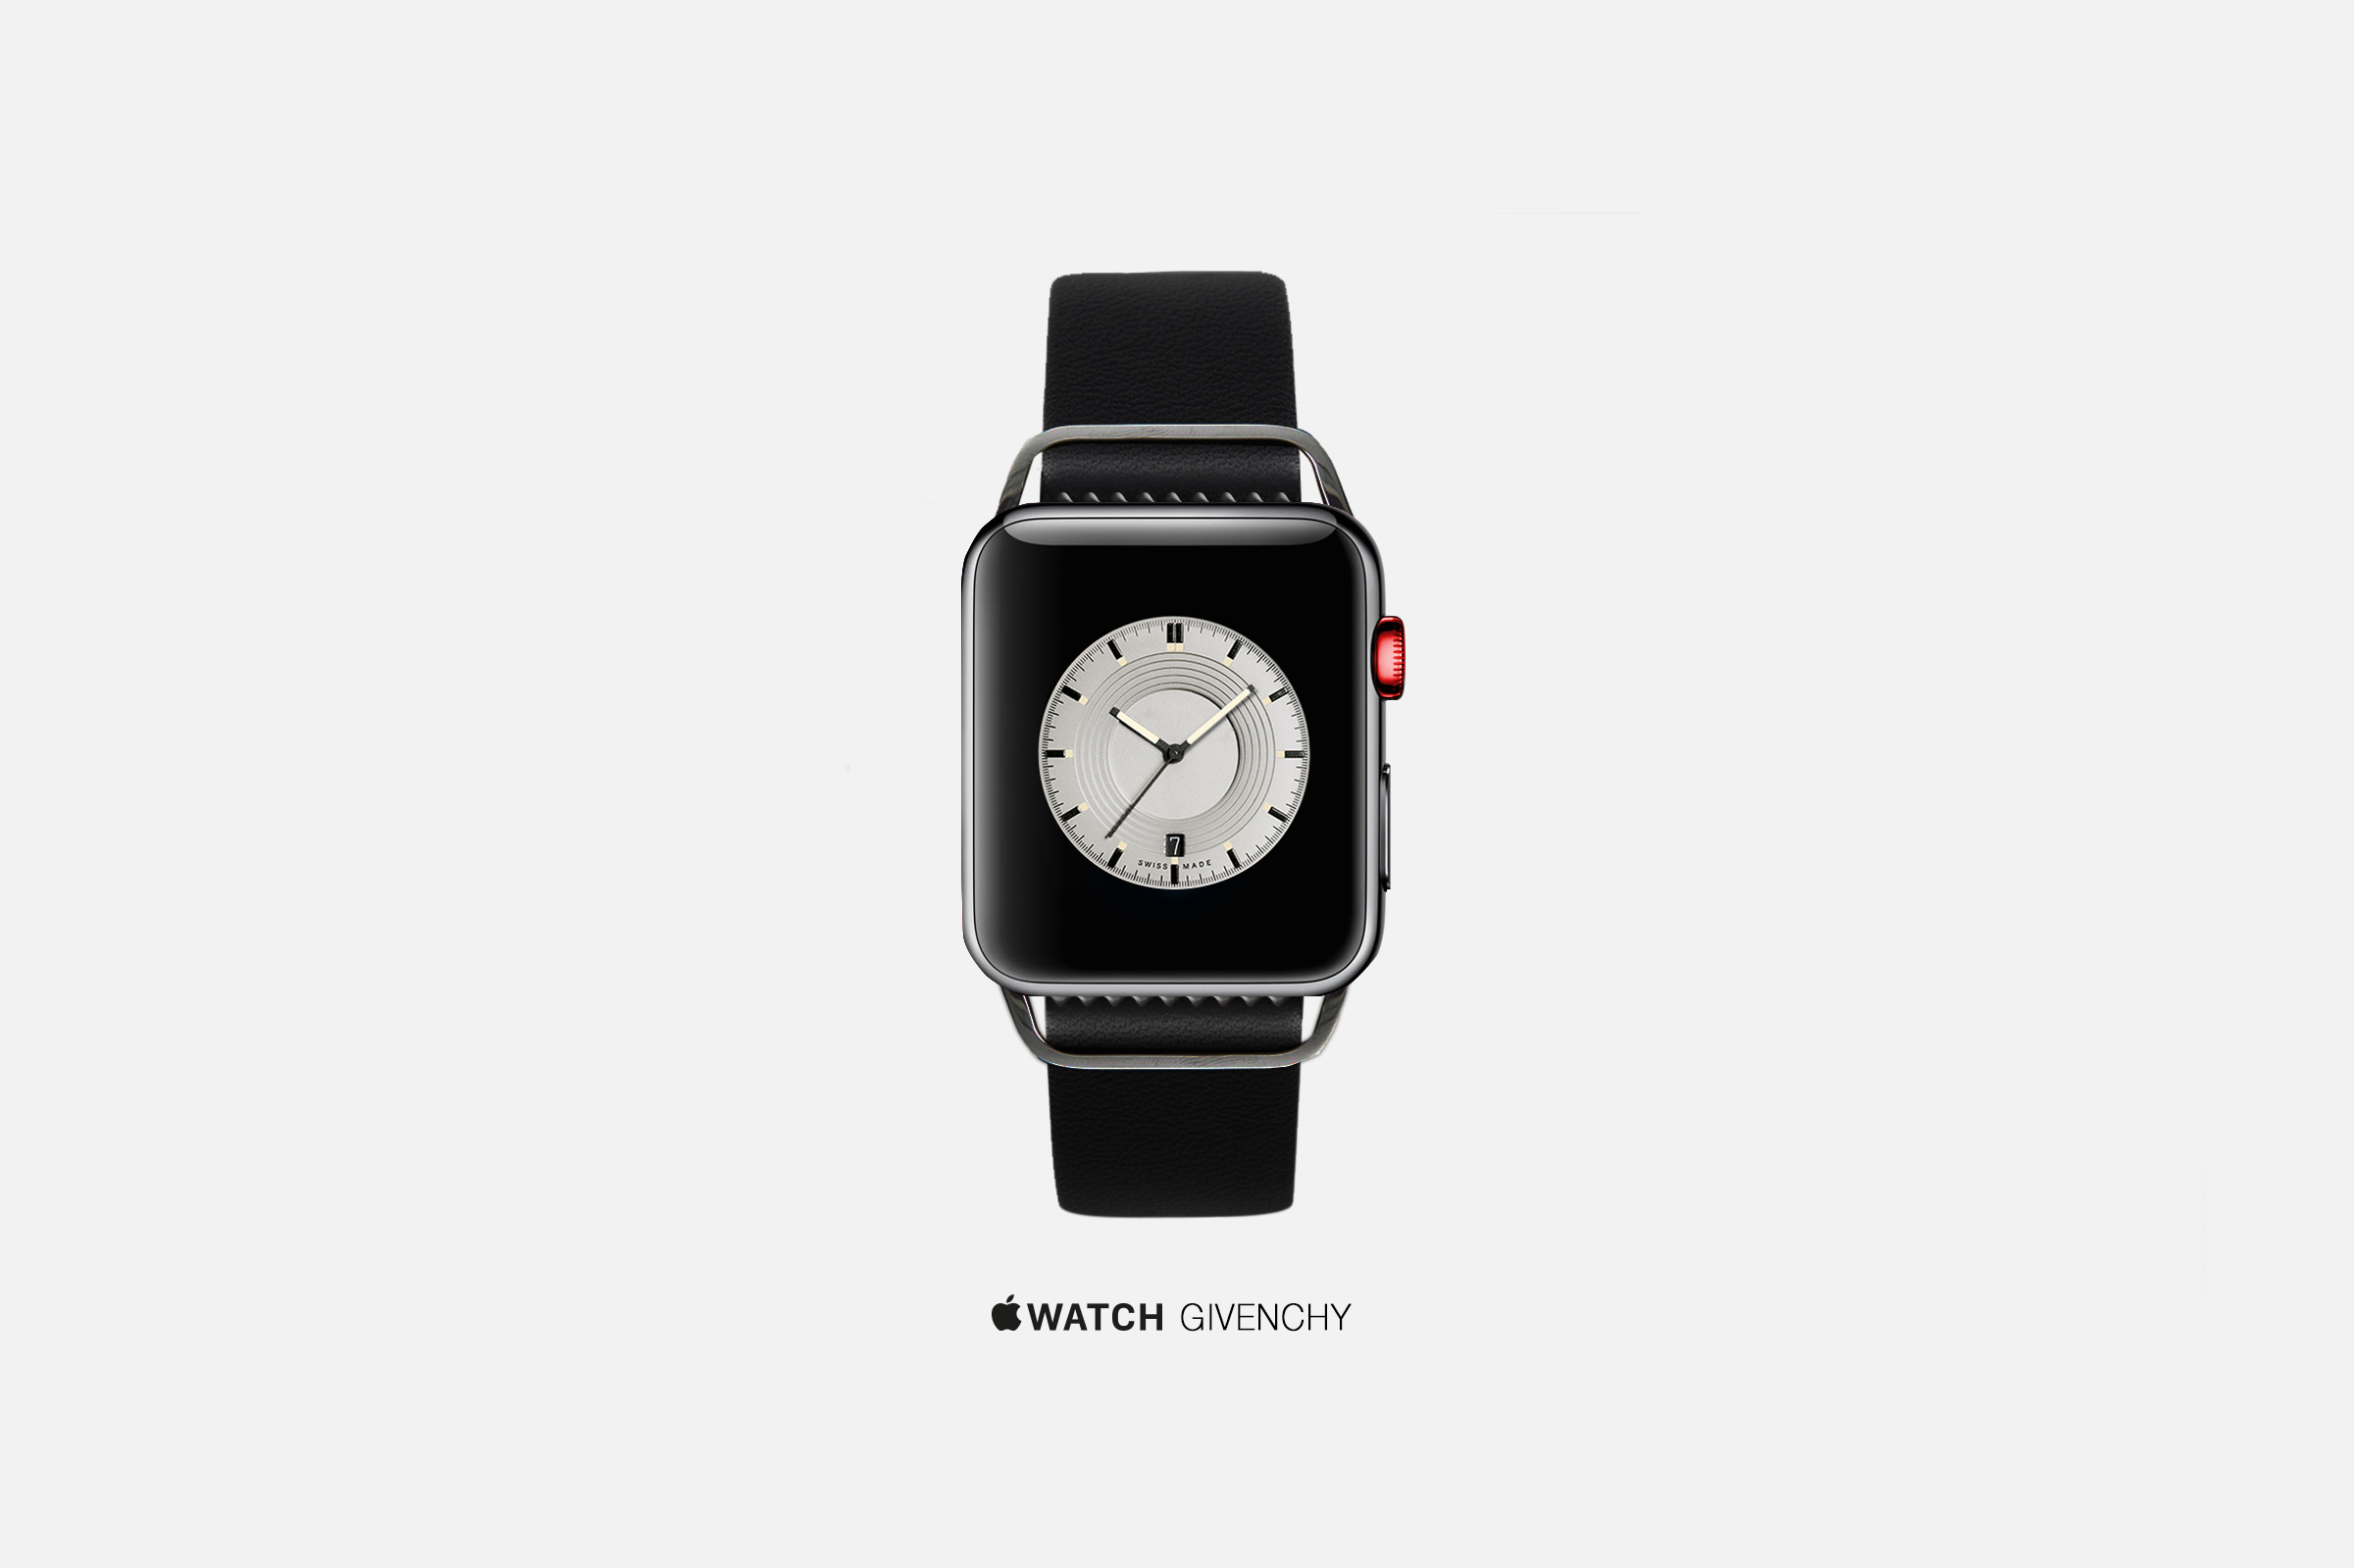 An artist's concept of an Apple Watch by Givenchy.